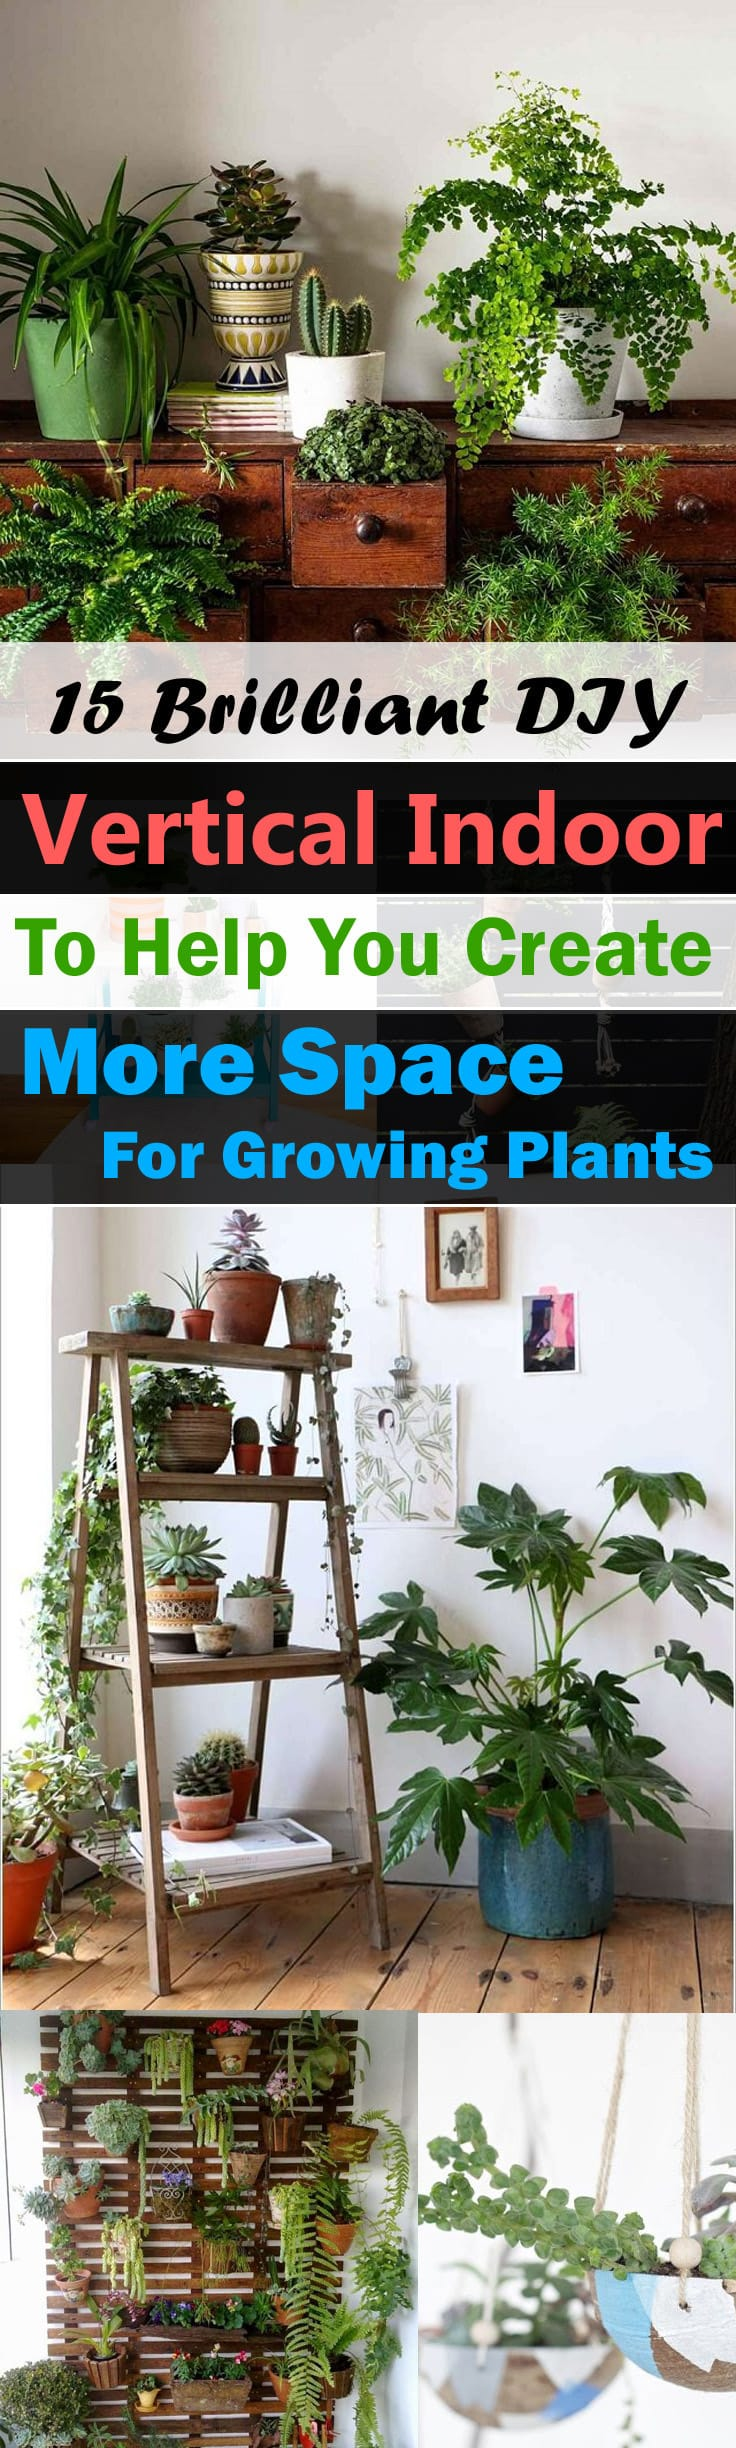 Endearing Gardening Can Be A Challenge If Short Diy Vertical Garden Ideas To Help You Create Diy Vertical Garden Wall Vertical Vegetable Garden Diy garden Diy Vertical Garden Indoor